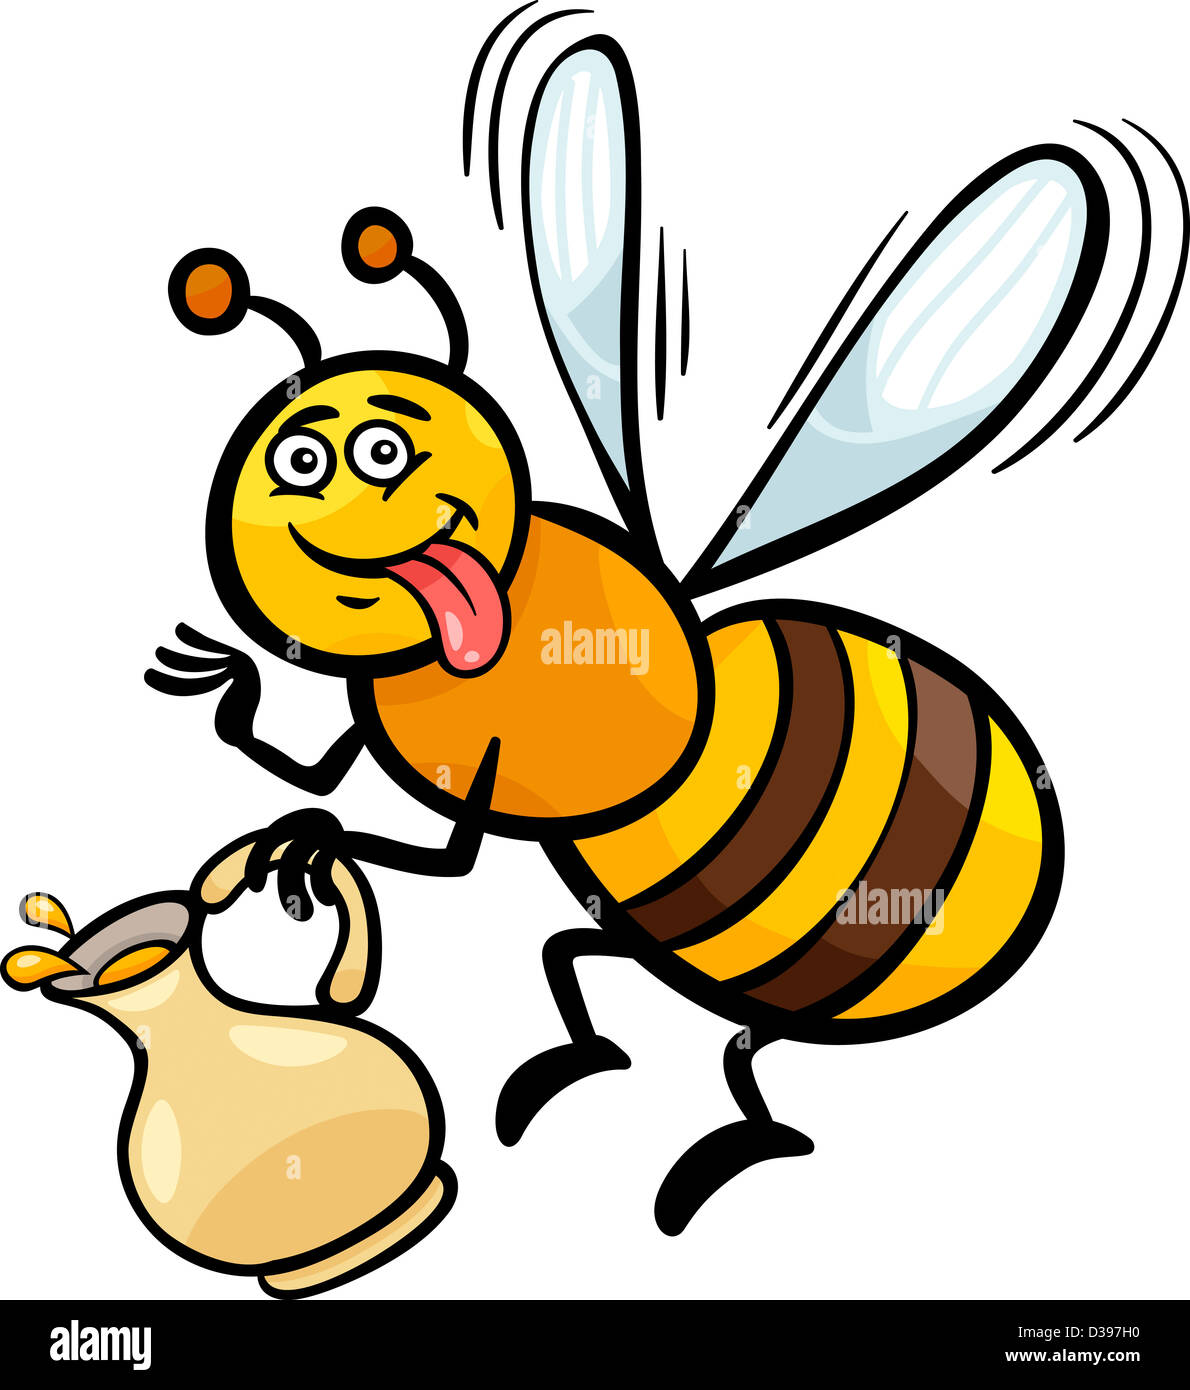 cartoon illustration of funny bee with pot of honey or nectar